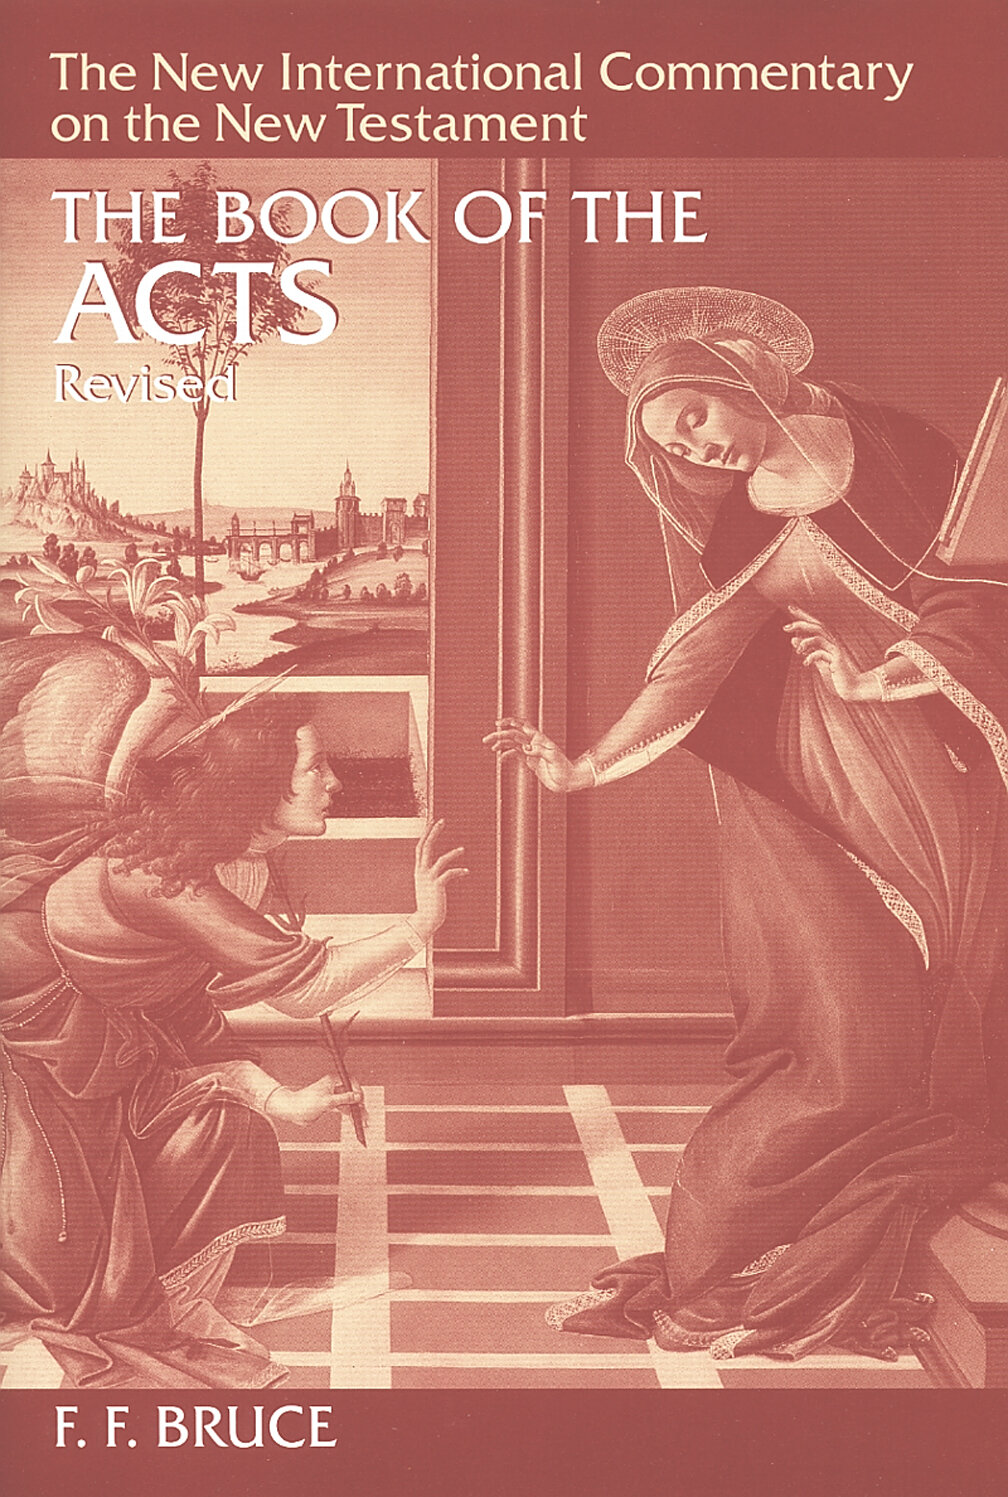 The Book of the Acts (The New International Commentary on the New Testament | NICNT)